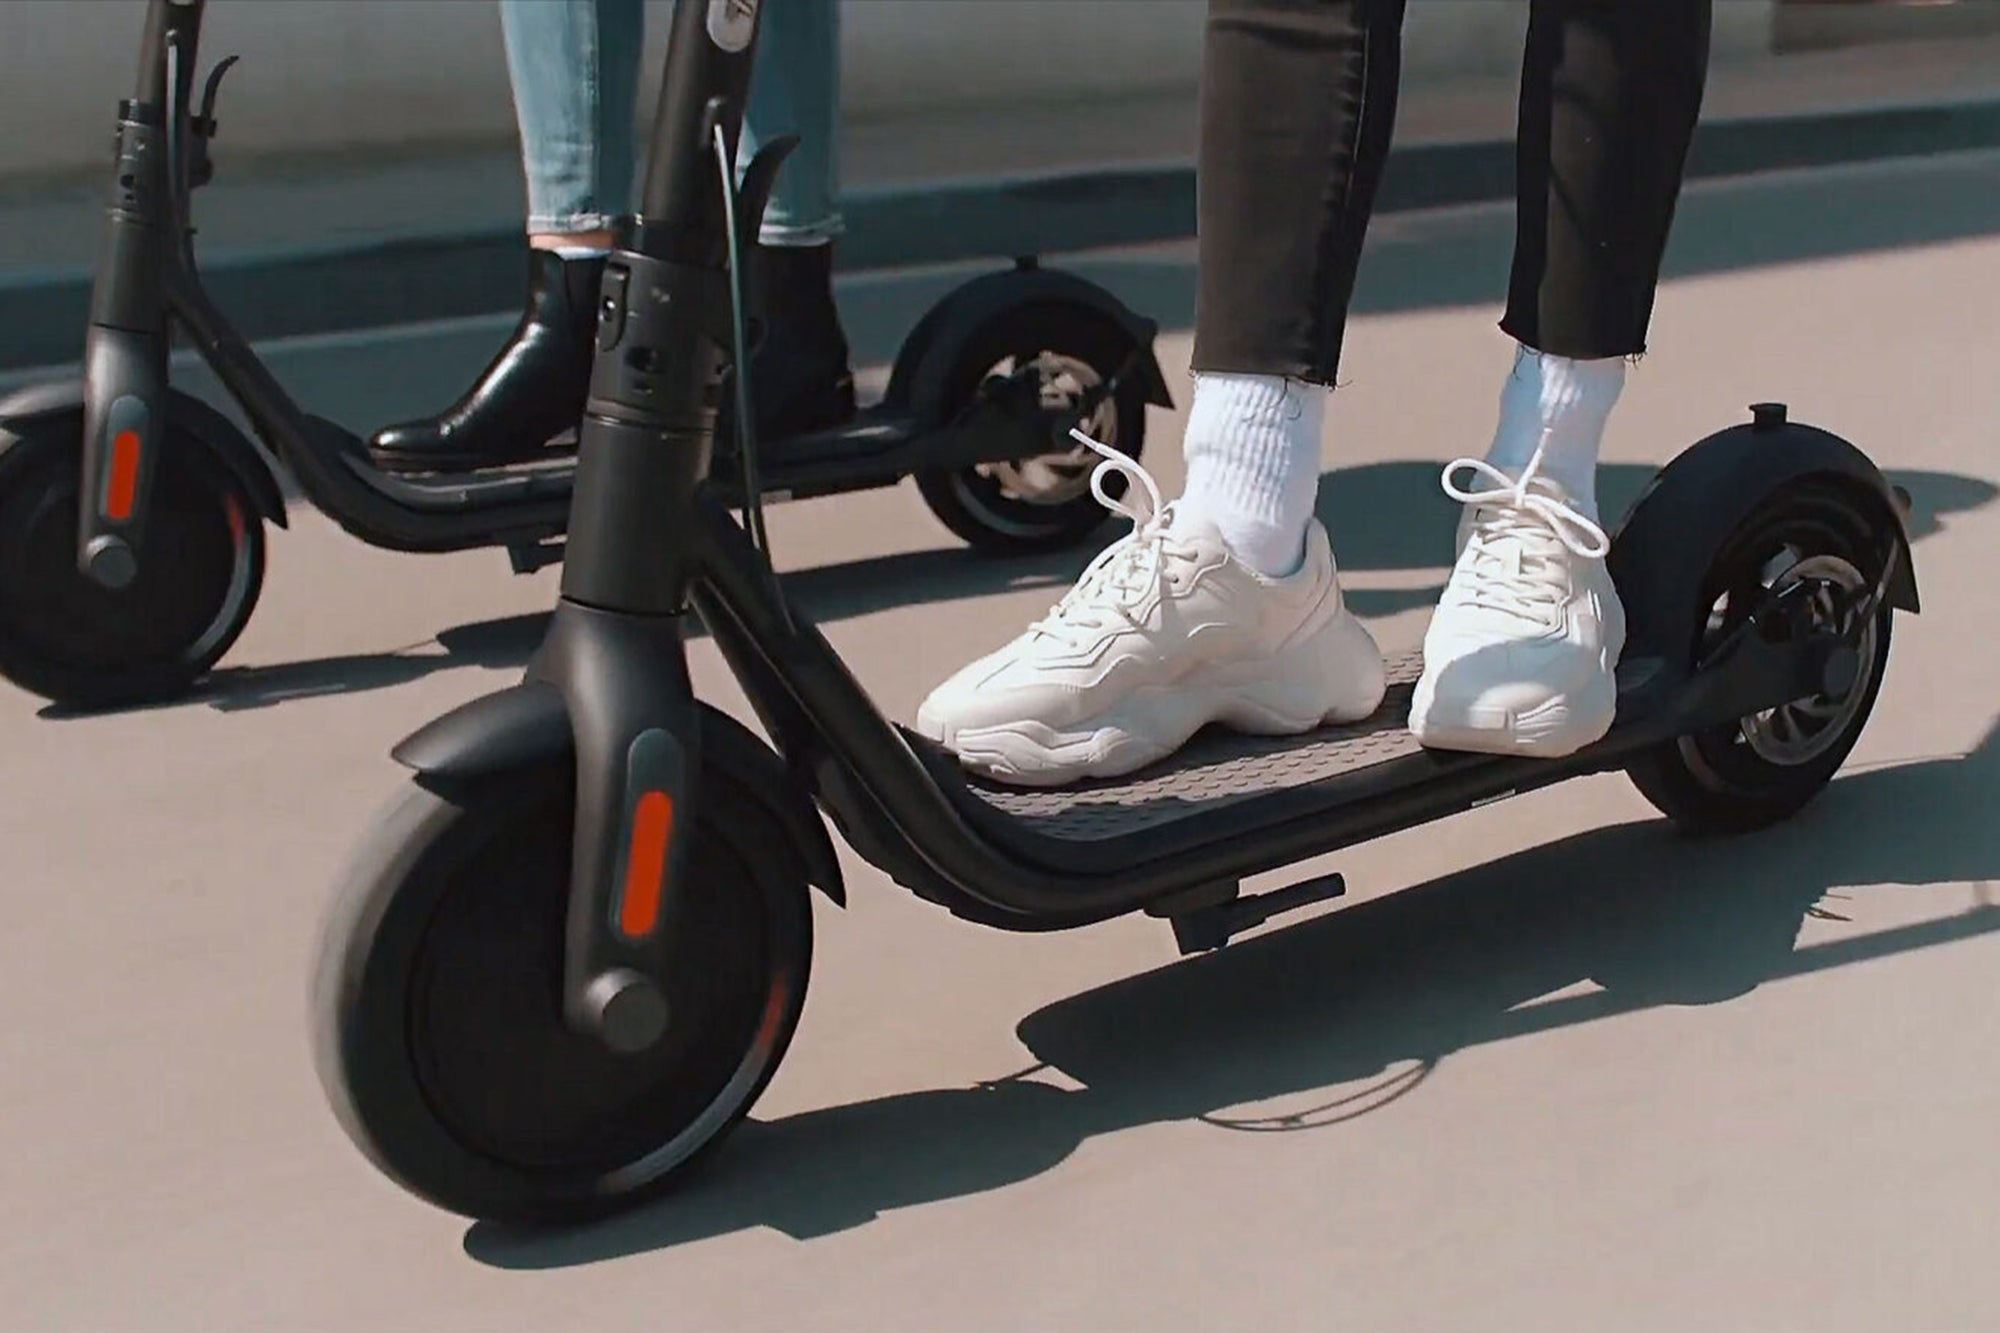 The Latest Segway Ninebot Scooter Is a Crowdfunding Success